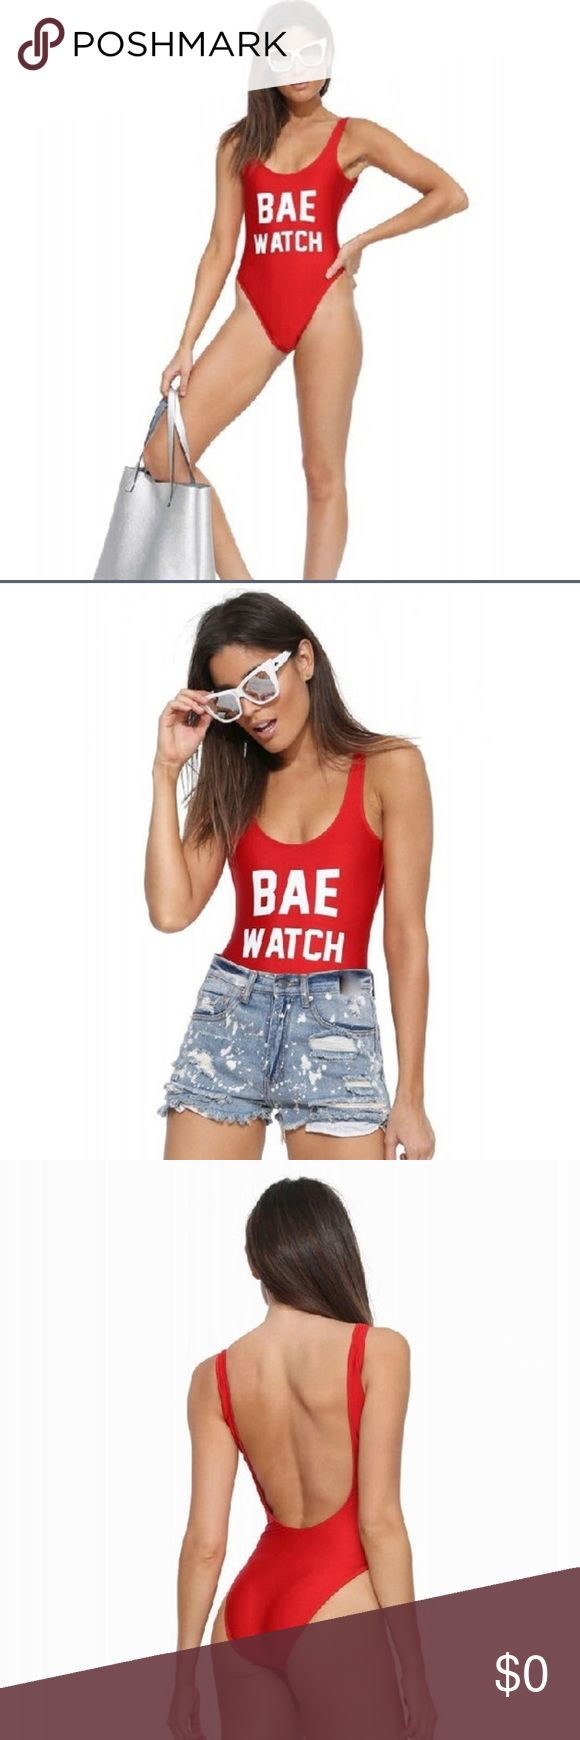 "Now available!  ""Bae"" Watch one piece! ☀️ Fun ""Bae Watch"" 1 piece swimming suit! Perfect for when you are at the beach or pool or just tanning and watching ""baes""  Comes with optional pads. Swim One Pieces"